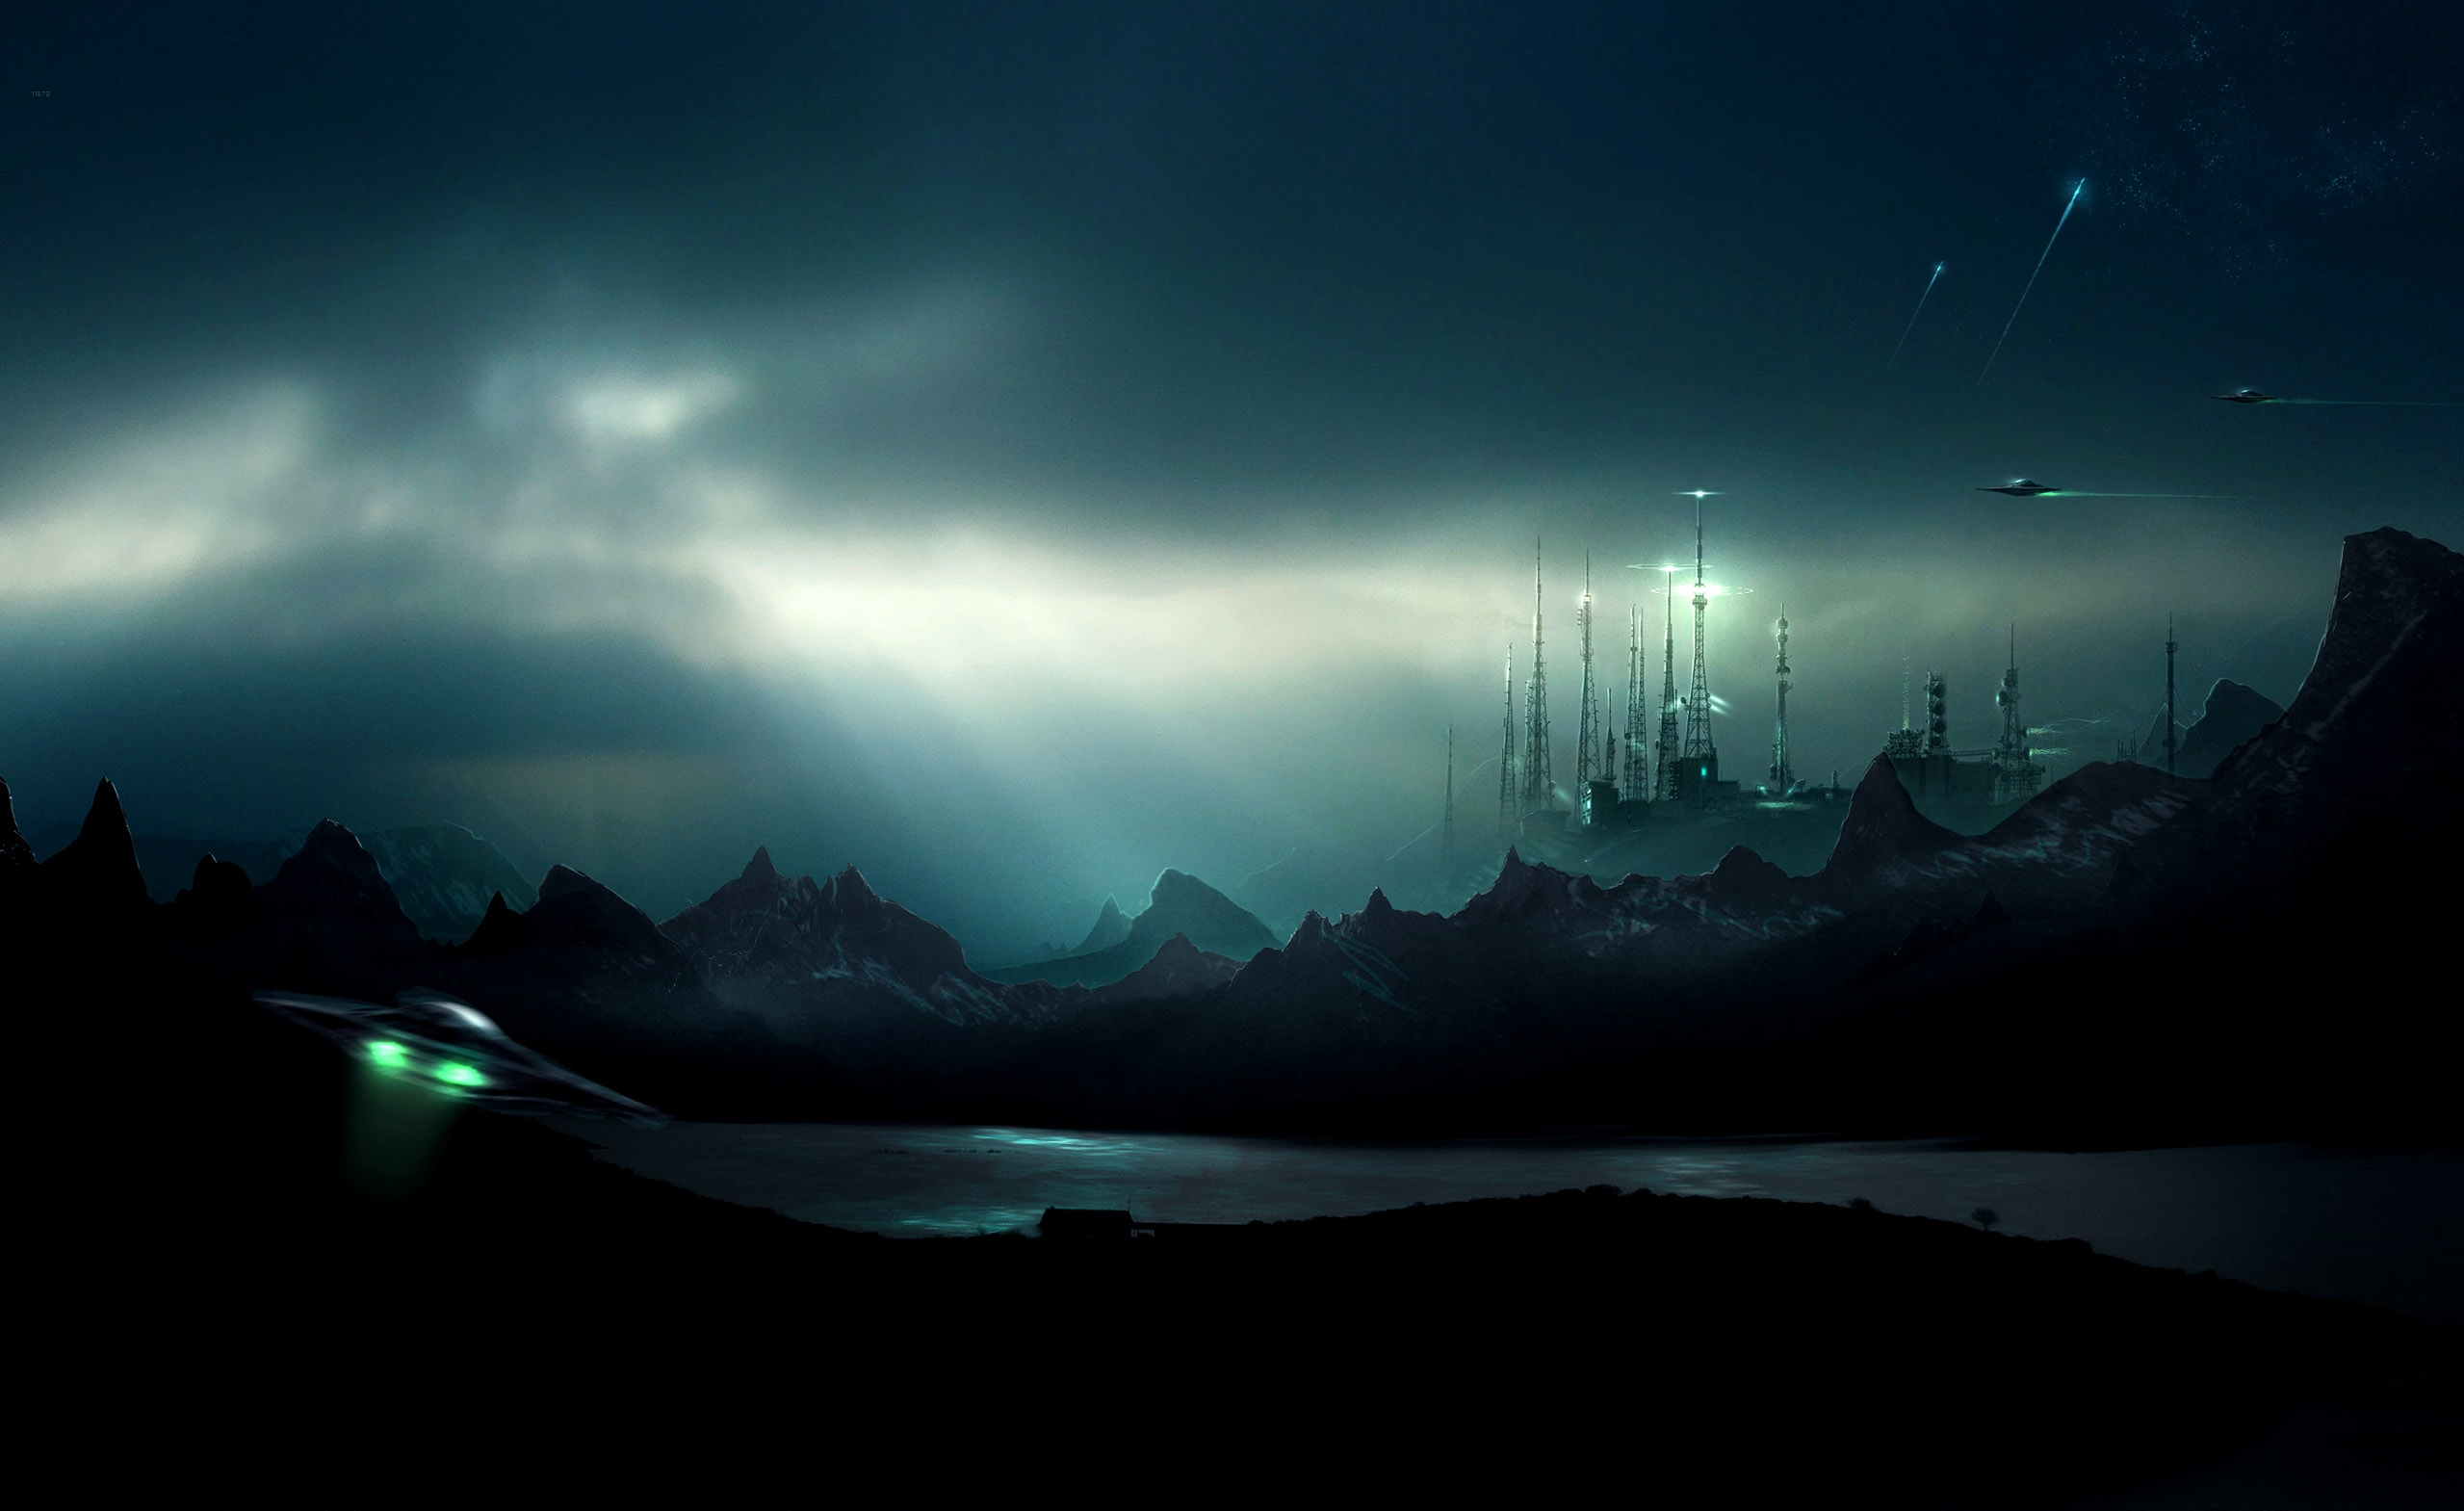 23 Futuristic HD Wallpapers | Backgrounds - Wallpaper Abyss